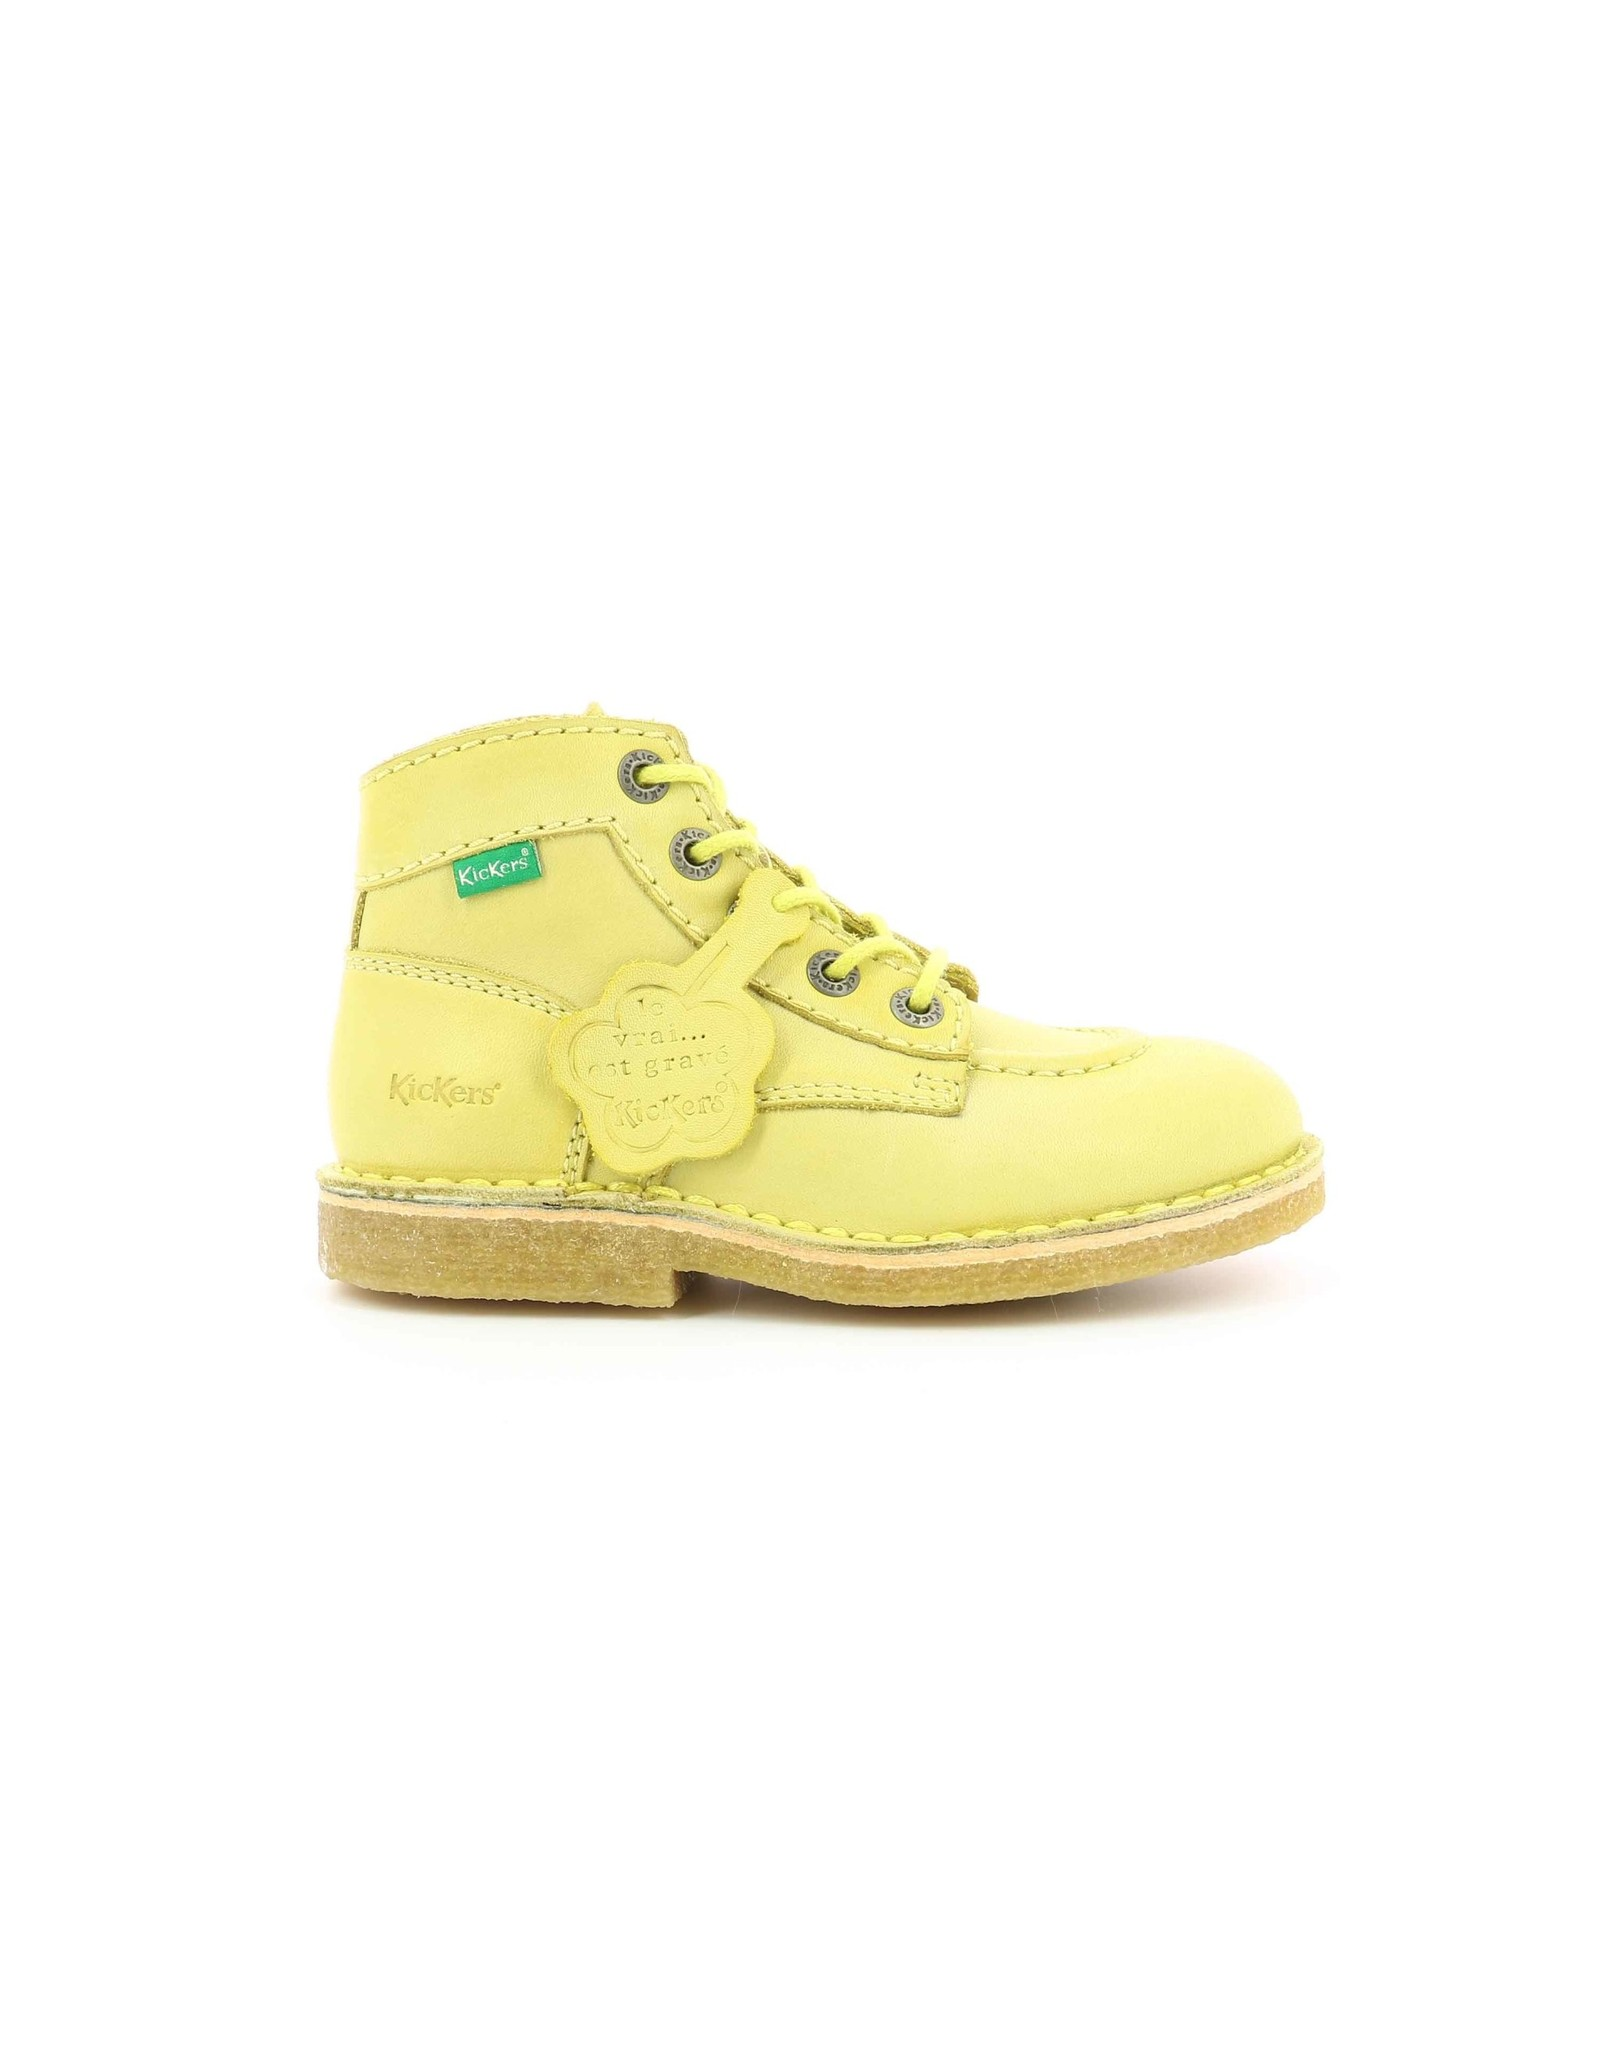 KICKERS KICK LEGEND JAUNE CLAIR KT80JC 660243-30+71